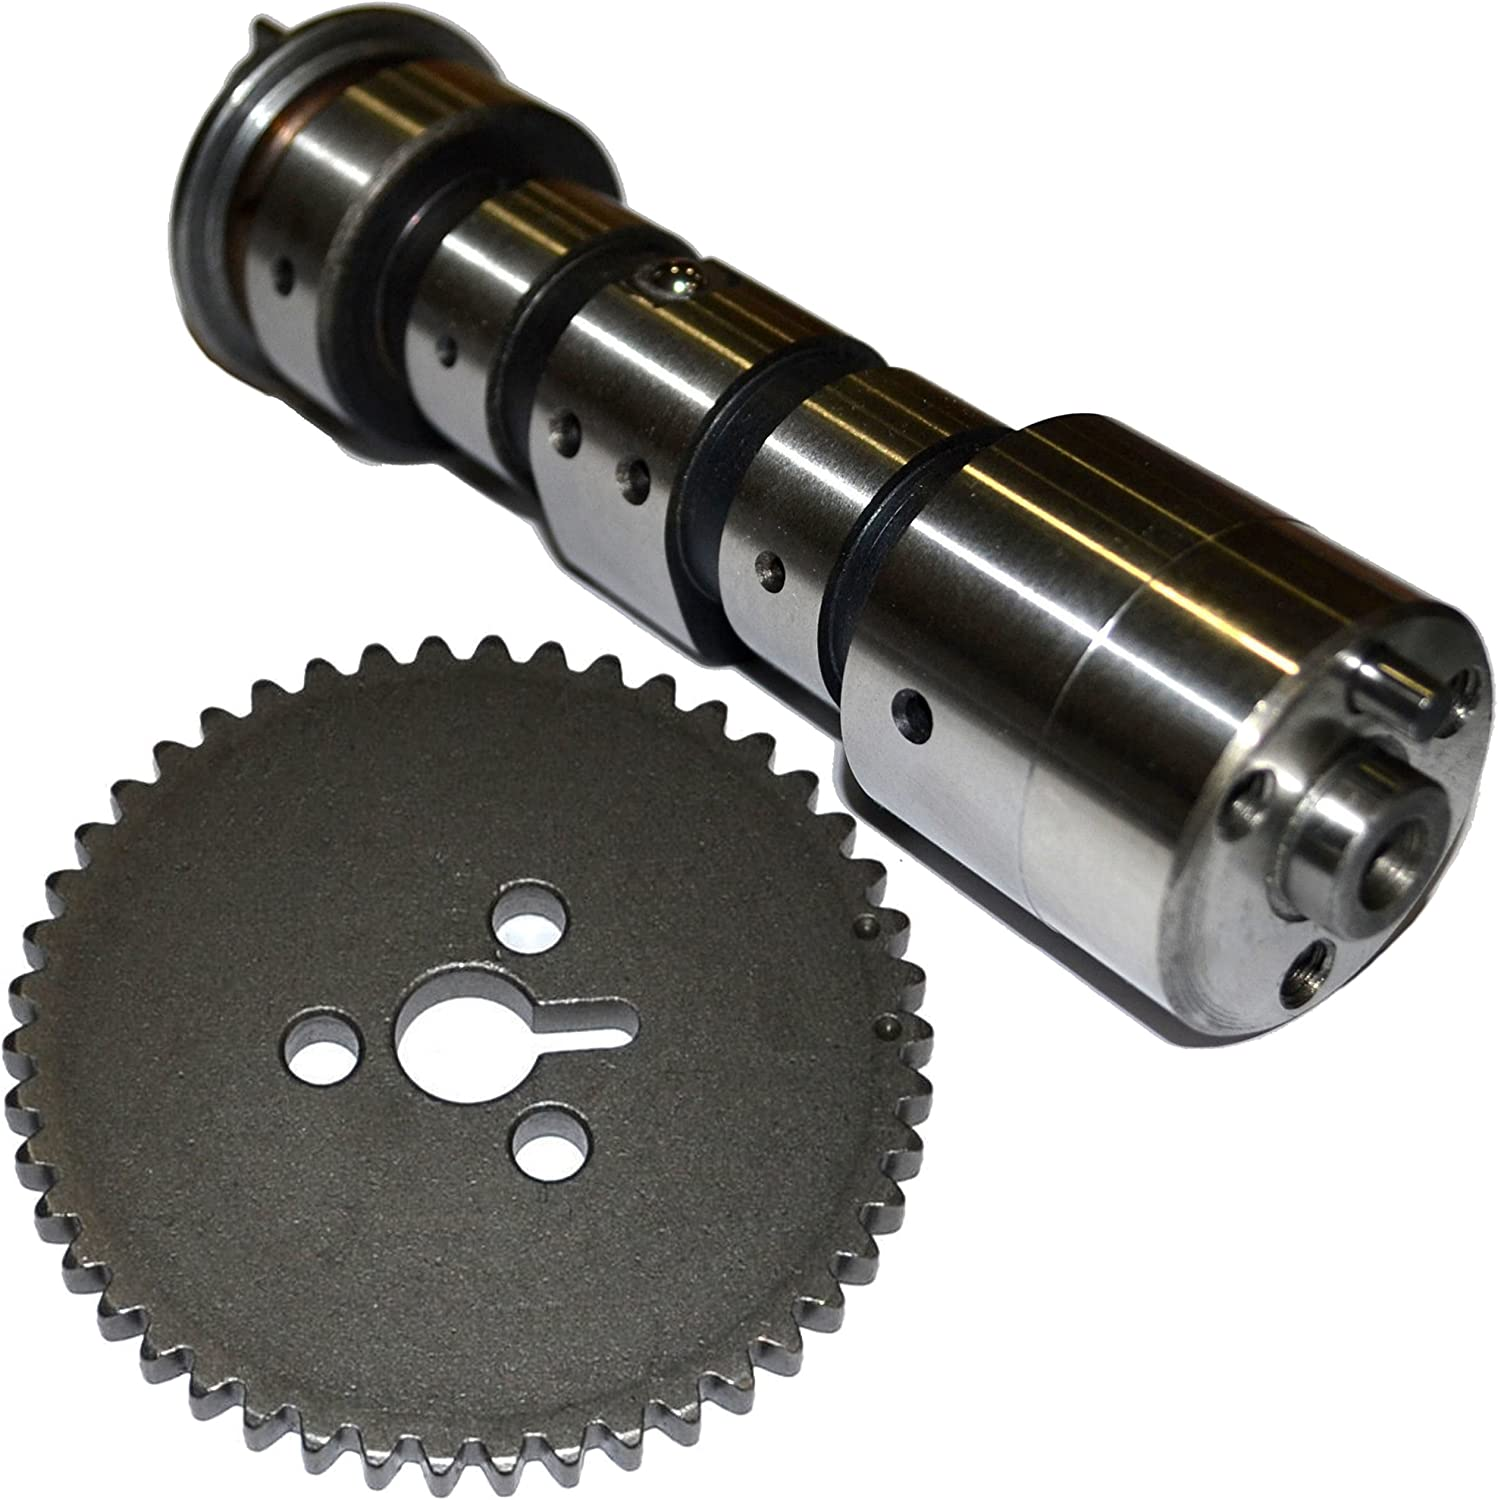 TOP NOTCH PARTS GEAR WITH CAMSHAFT POLARIS FITS SPORTS Cheap SALE Start 5% OFF SHAFT CAM